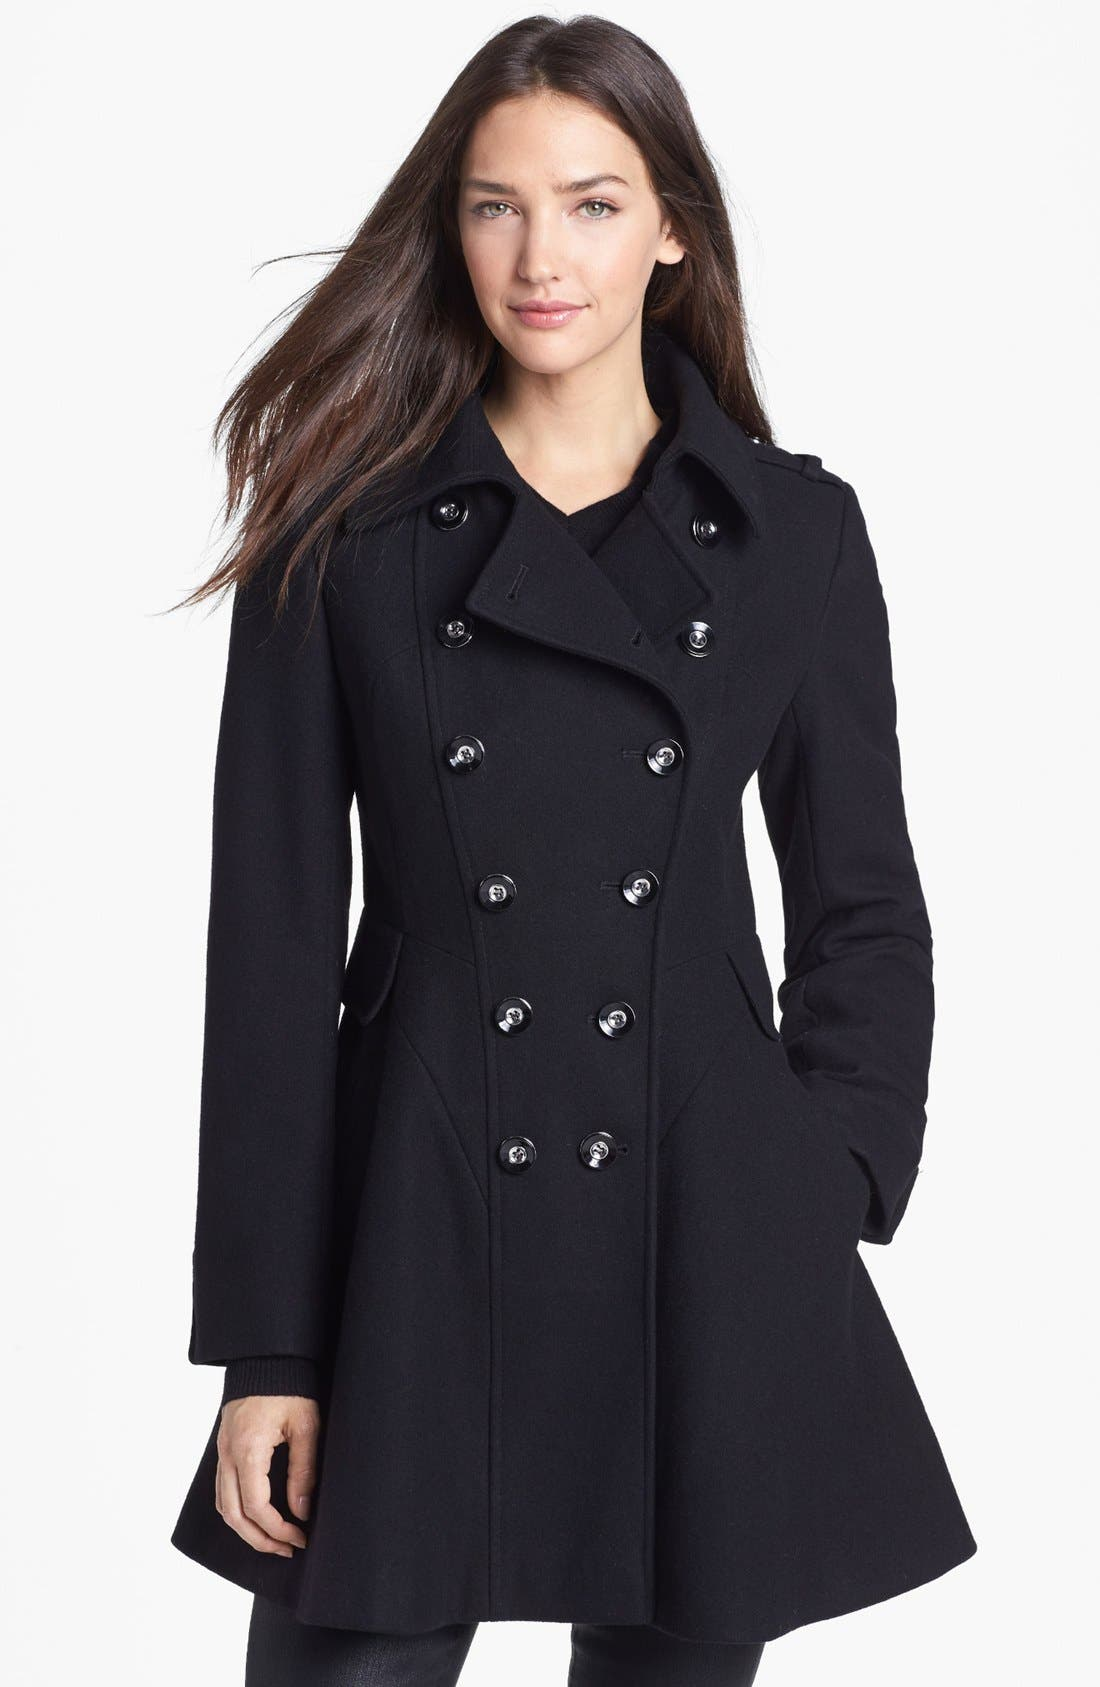 Alternate Image 1 Selected - Via Spiga Double Breasted Wool Blend Military Coat